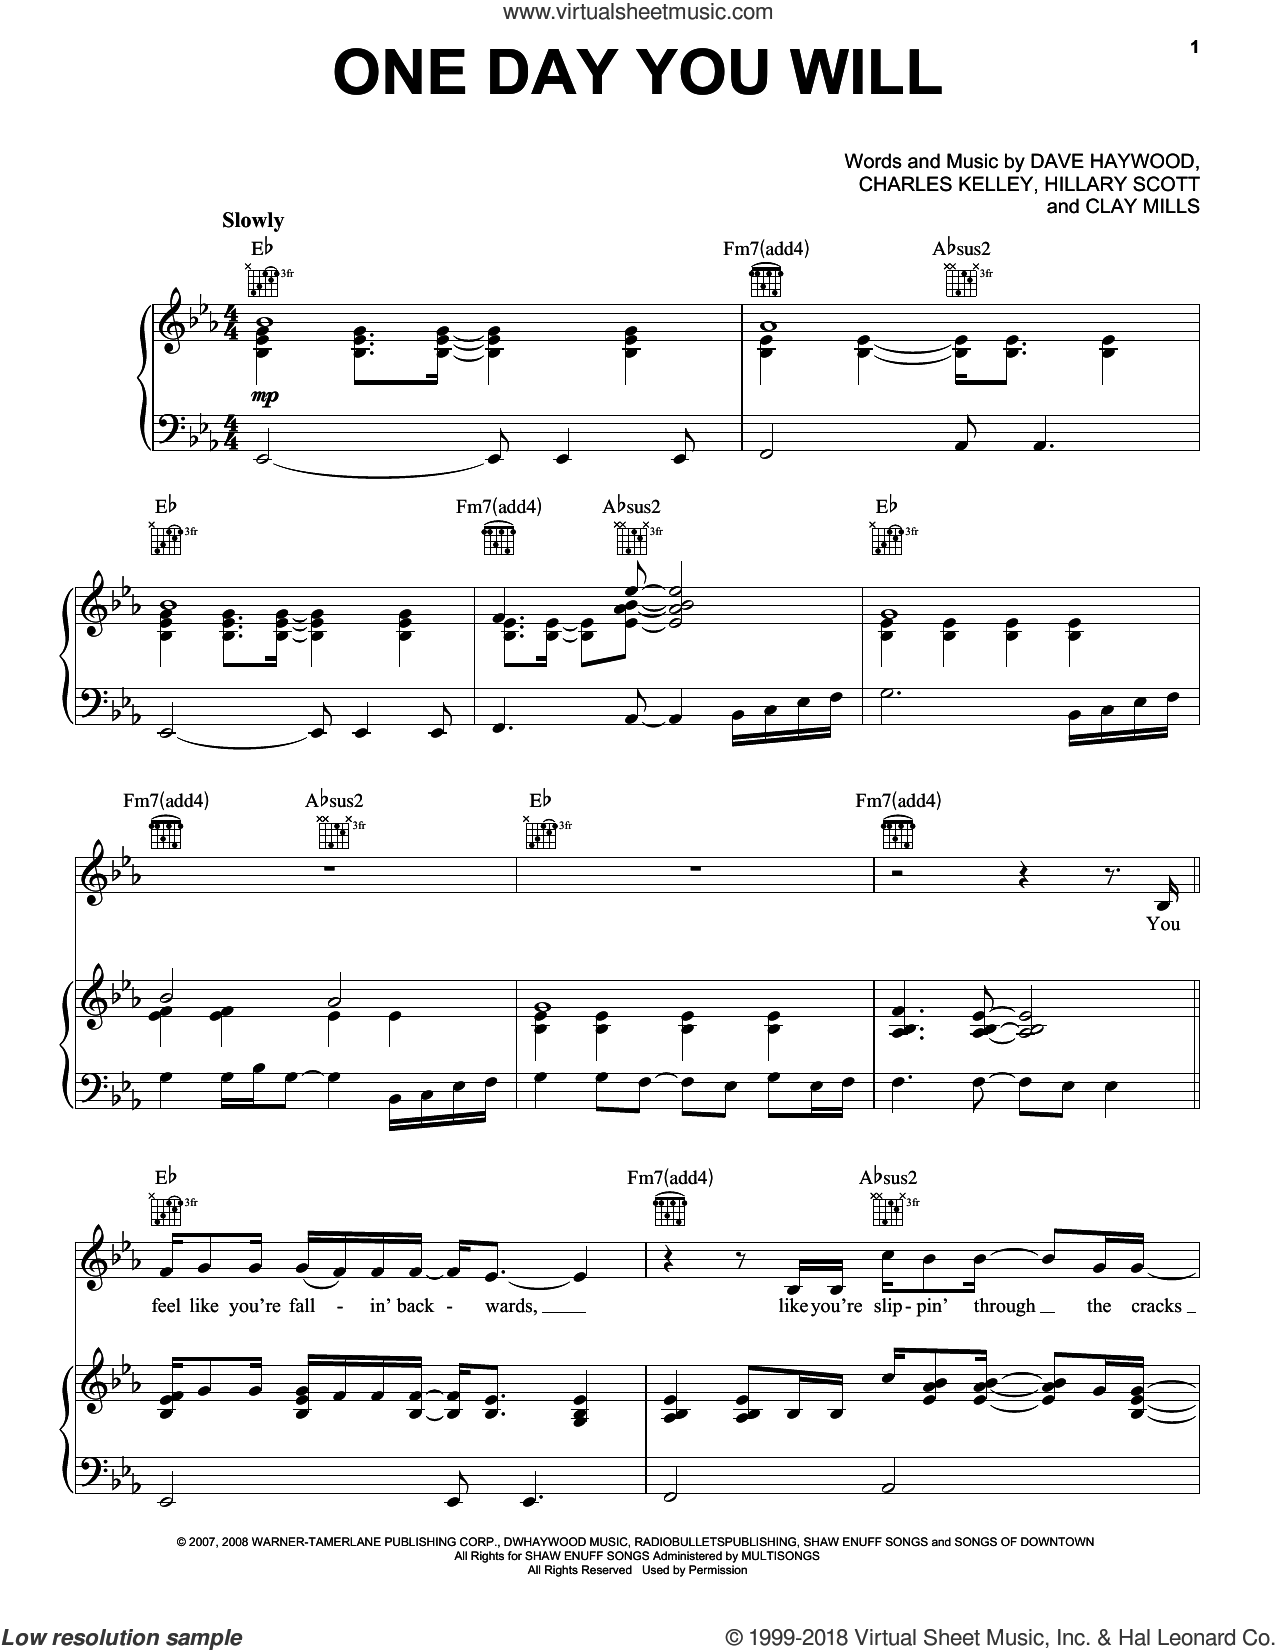 One Day You Will sheet music for voice, piano or guitar by Lady Antebellum, Charles Kelley, Clay Mills, Dave Haywood and Hillary Scott, intermediate